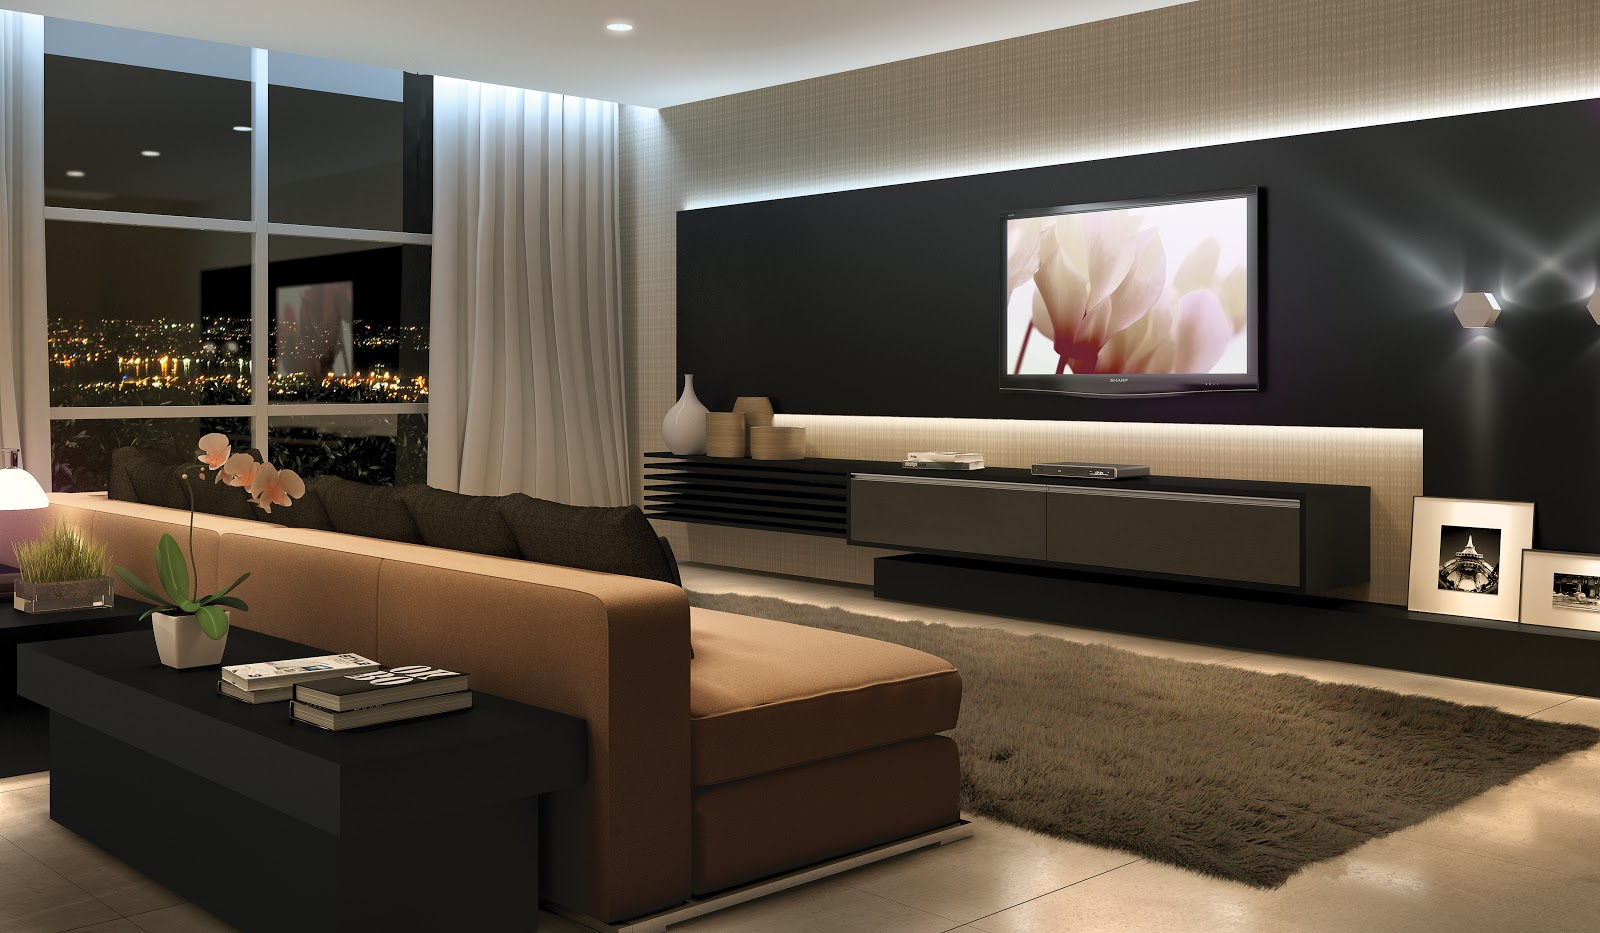 construindo minha casa clean sala de estar com tv modernas consultoria de decora o online 3d. Black Bedroom Furniture Sets. Home Design Ideas